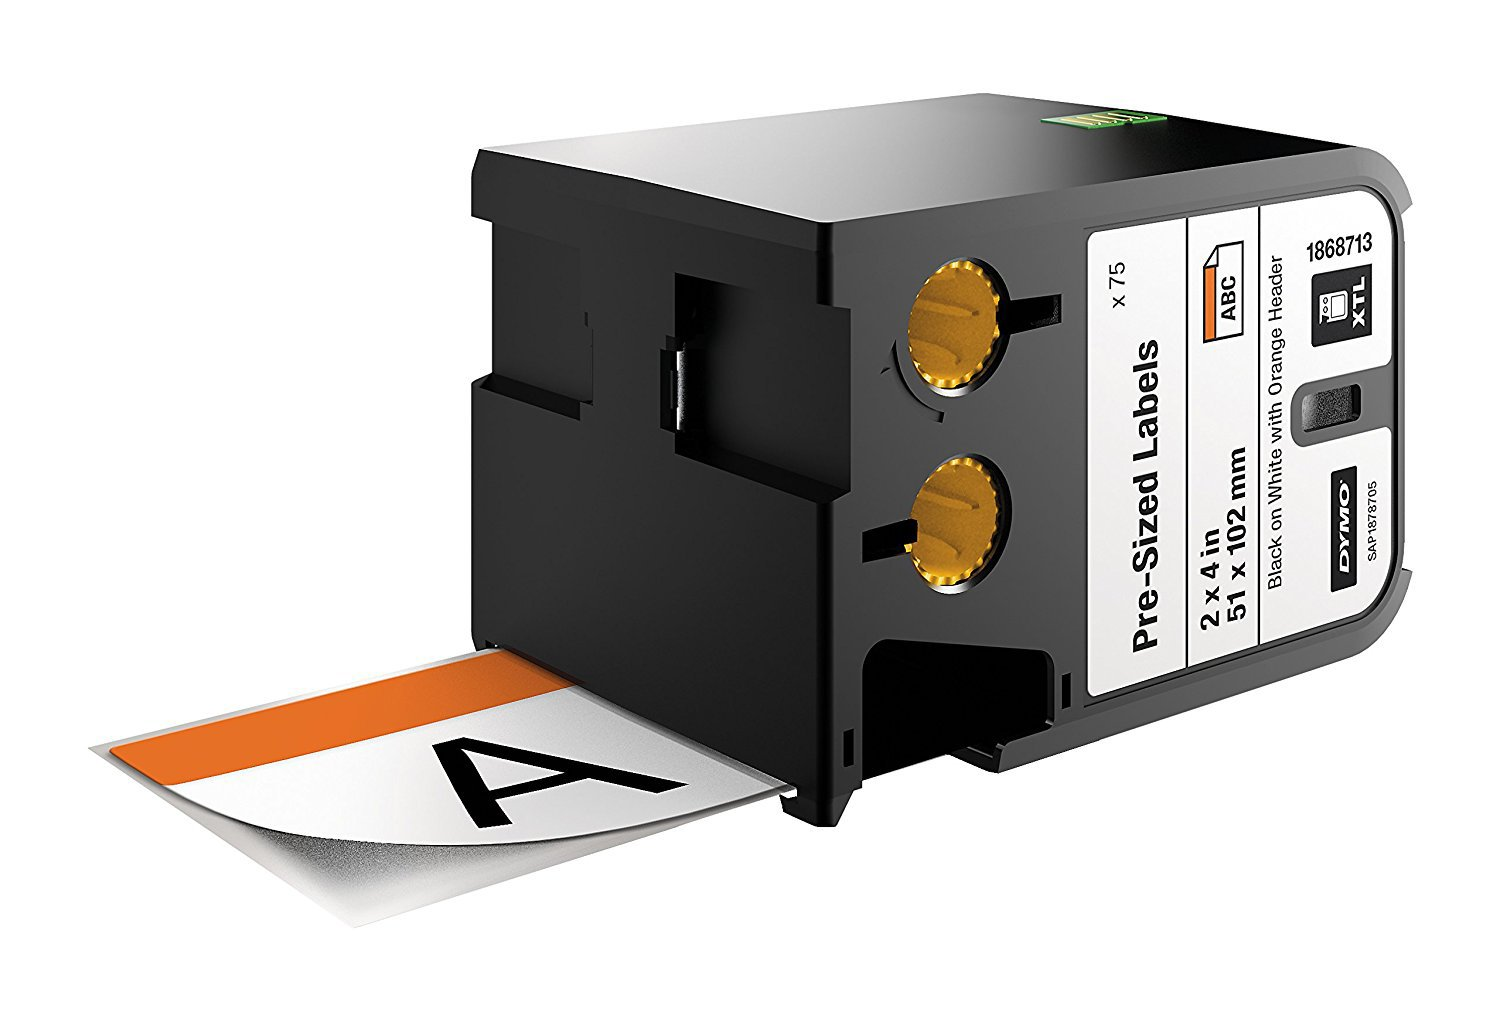 DYMO Industrial Pre-sized Safety Labels for DYMO XTL Label Makers, Black on White with Orange Header, 2''x4'', 1 Roll (1868713)